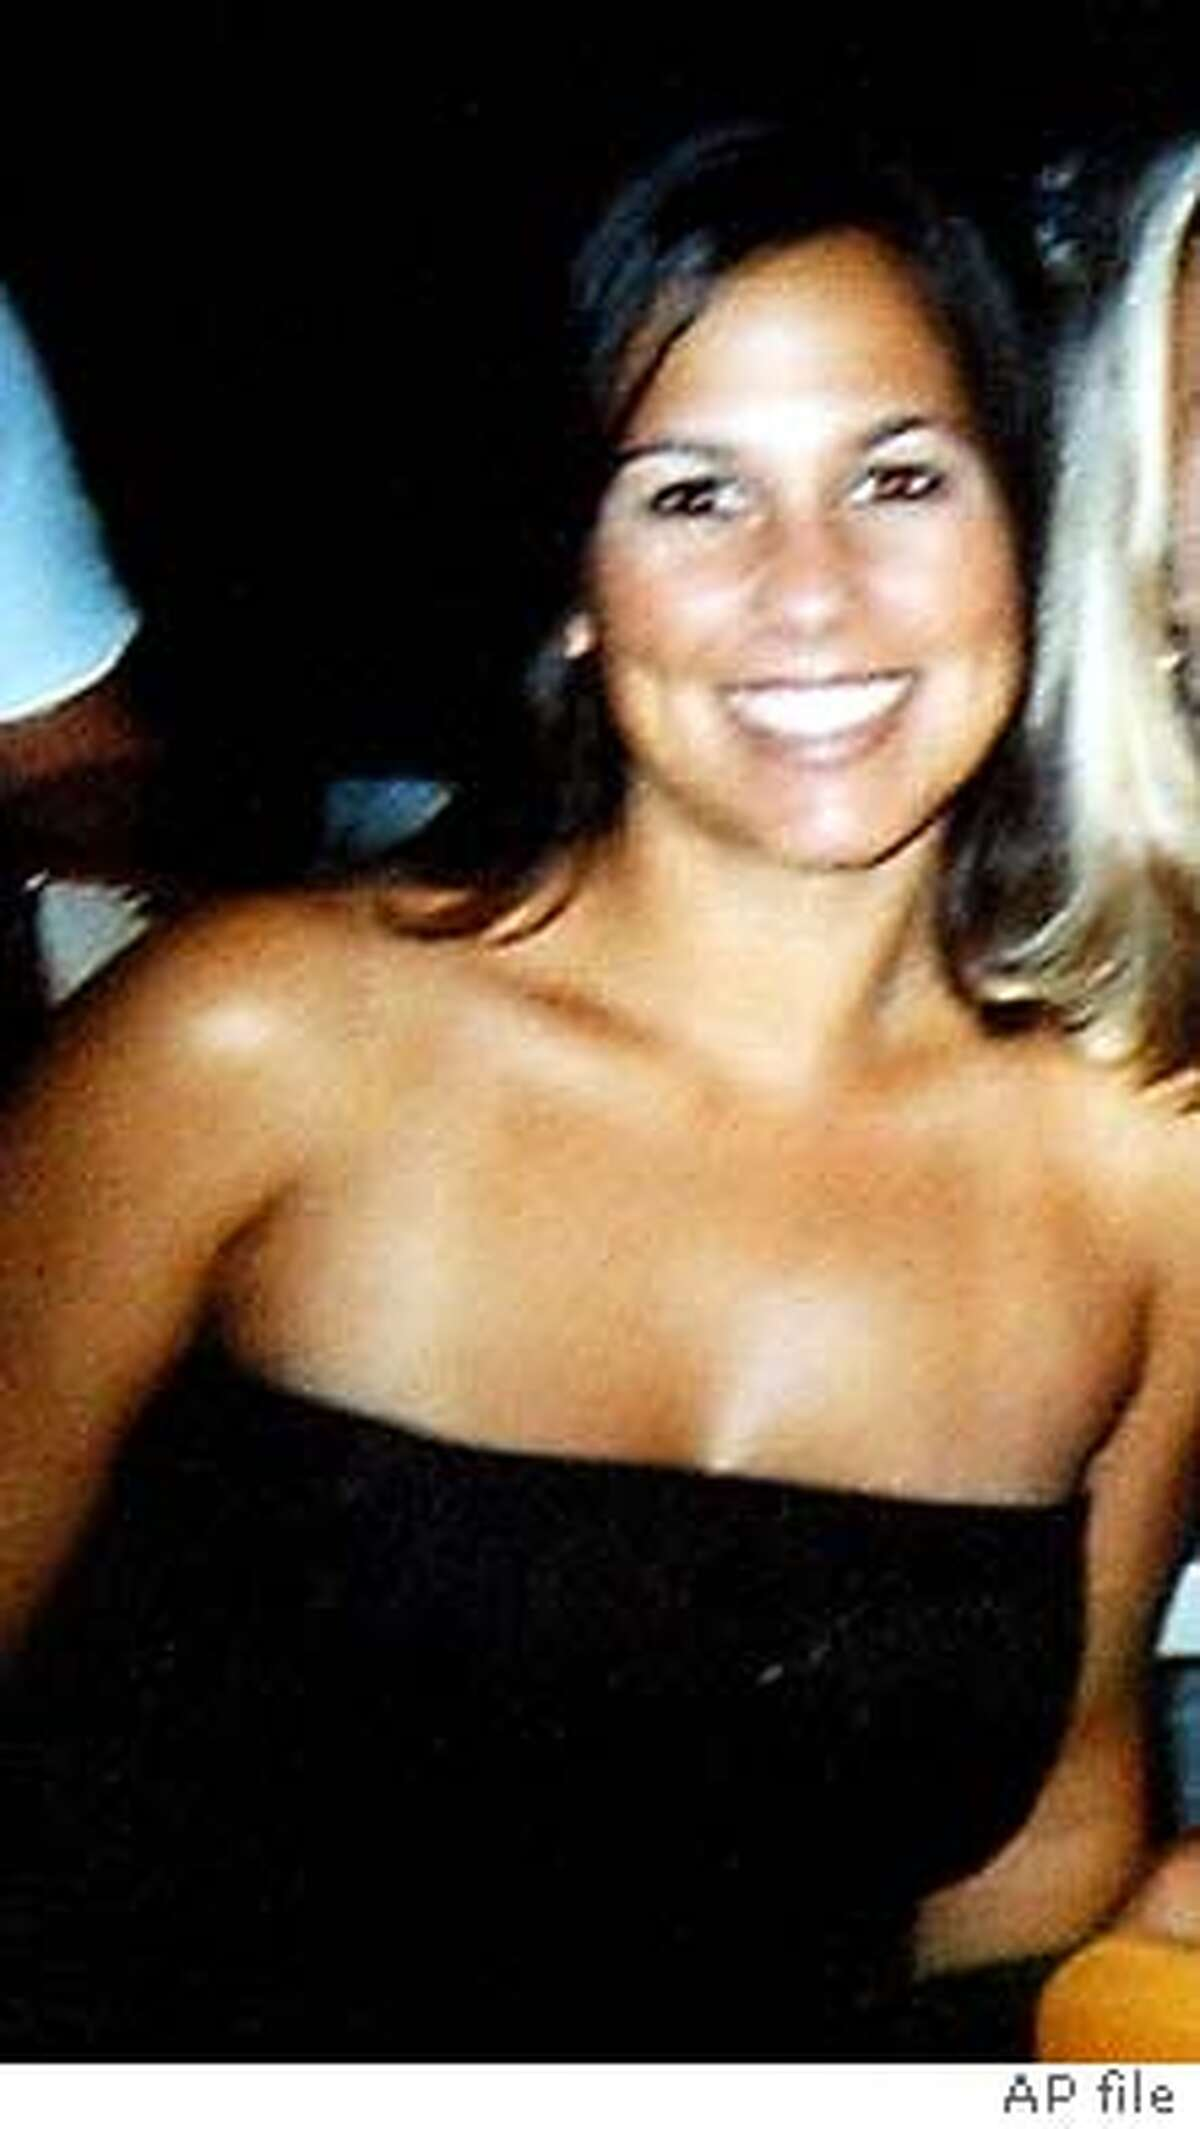 """** FILE ** Laci Peterson, 27, of Modesto, Calif., is shown in this July 2002 family photo. Scott Peterson was arrested in San Diego, Calif. on Friday, April 18, 2003 in connection with the disappearance of his pregnant wife, Laci, a sheriff's deputy said as police prepared to announce a """"significant'' development in the case.(AP Photo/Peterson Family), Also ran 8/23/03 Scott Peterson (left) will have a hearing this week in the case of his wife, Laci Petersons, death. Scott Peterson, left, will have a hearing this week in the death of his wife, Laci Peterson. Photo caption peterson27_PH21041379200PETERSON FAMILY** FILE ** Laci Peterson, 27, of Modesto, Calif., is shown in this July 2002 family photo. Scott Peterson was arrested in San Diego, Calif. on Friday, April 18, 2003 in connection with the disappearance of his pregnant wife, Laci, a sheriff's deputy said as police prepared to announce a """"significant'' development in the case.(AP Photo-Peterson Family), Also ran 8-23-03__CAT w.PETERSON story CAT w.PETERSON story Laci Petersons disappearance and death made headlines around the country. Laci Petersons disappearance and death made headlines around the country."""